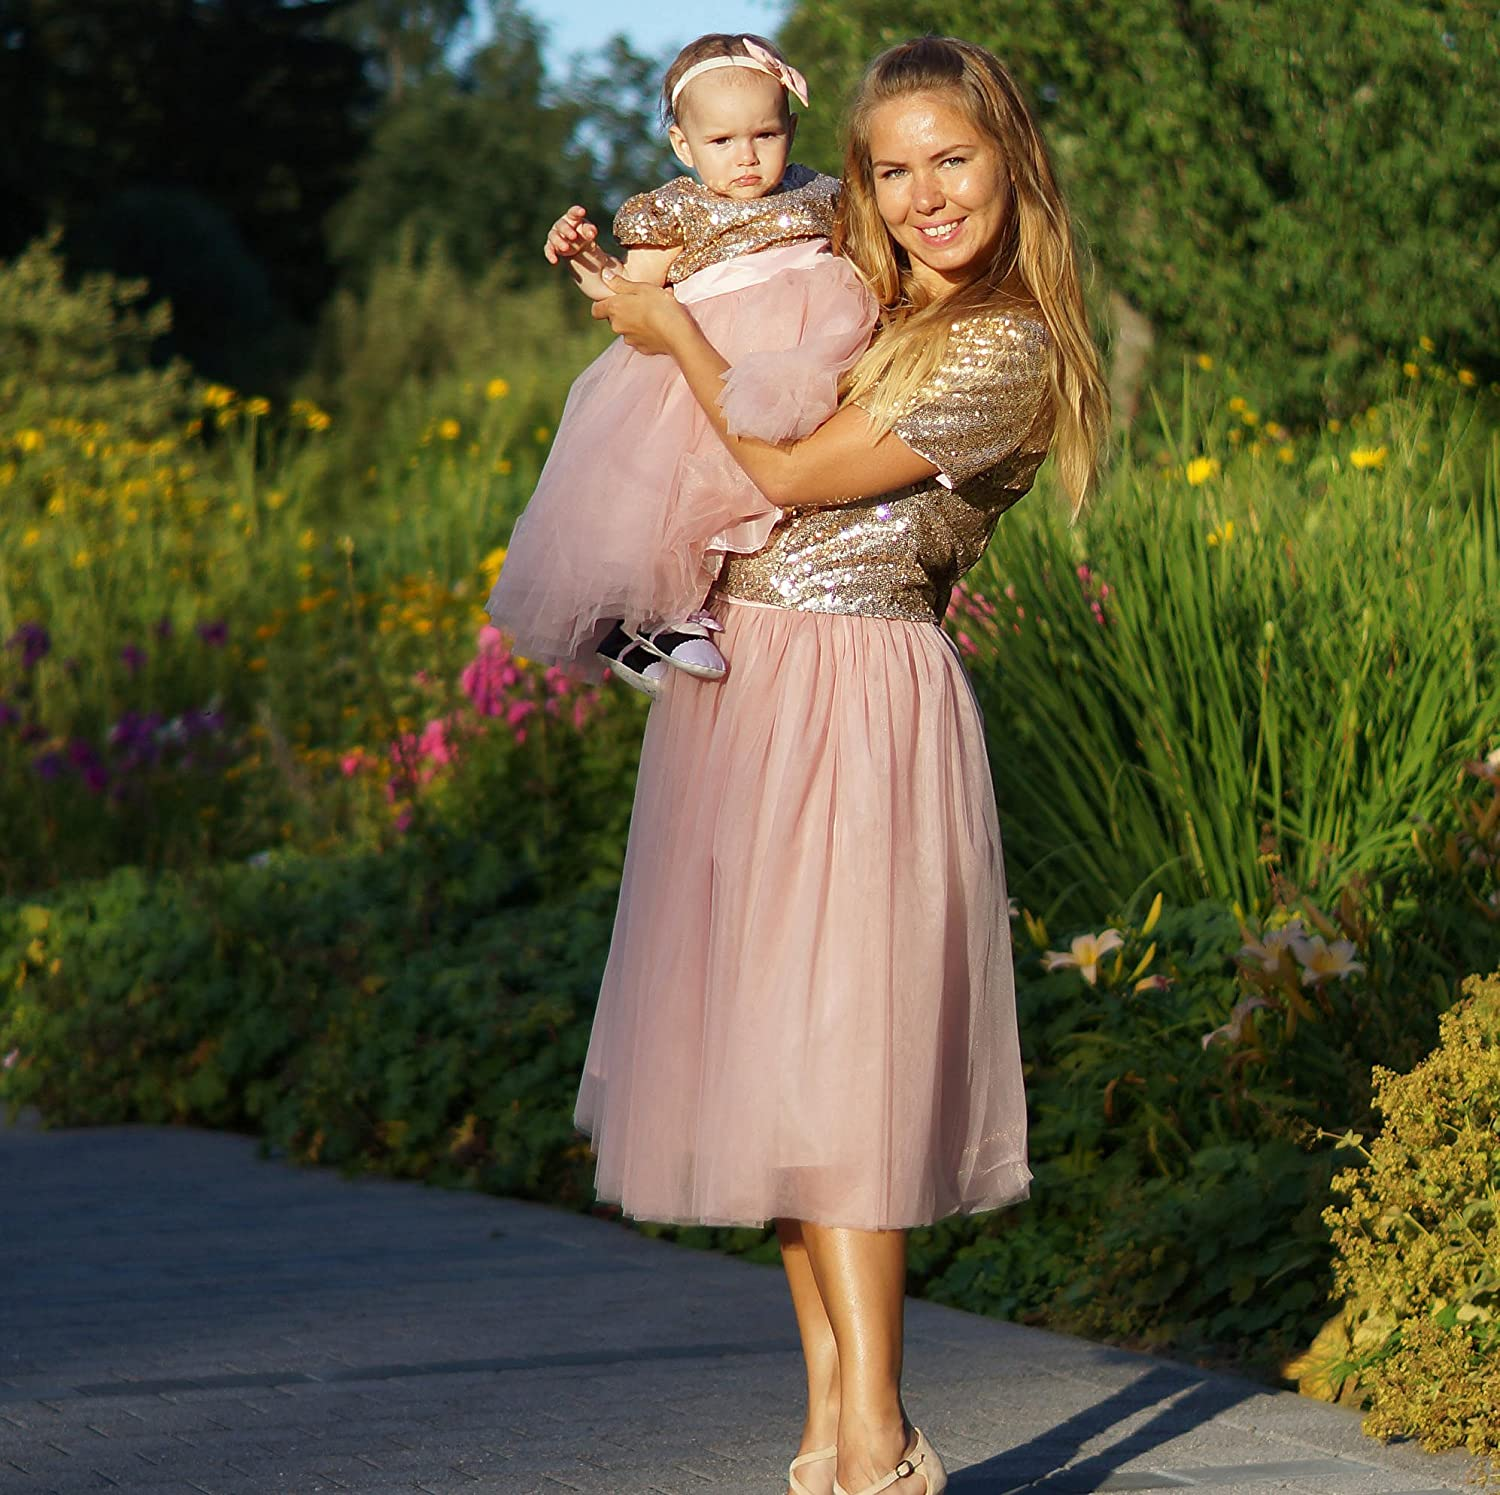 97f92ba7f1 Amazon.com: Gold mother daughter matching tutu dress, sequin dresses for Mom  and baby, girls party dress, Mommy and Me sequin dresses Matching outfit:  ...